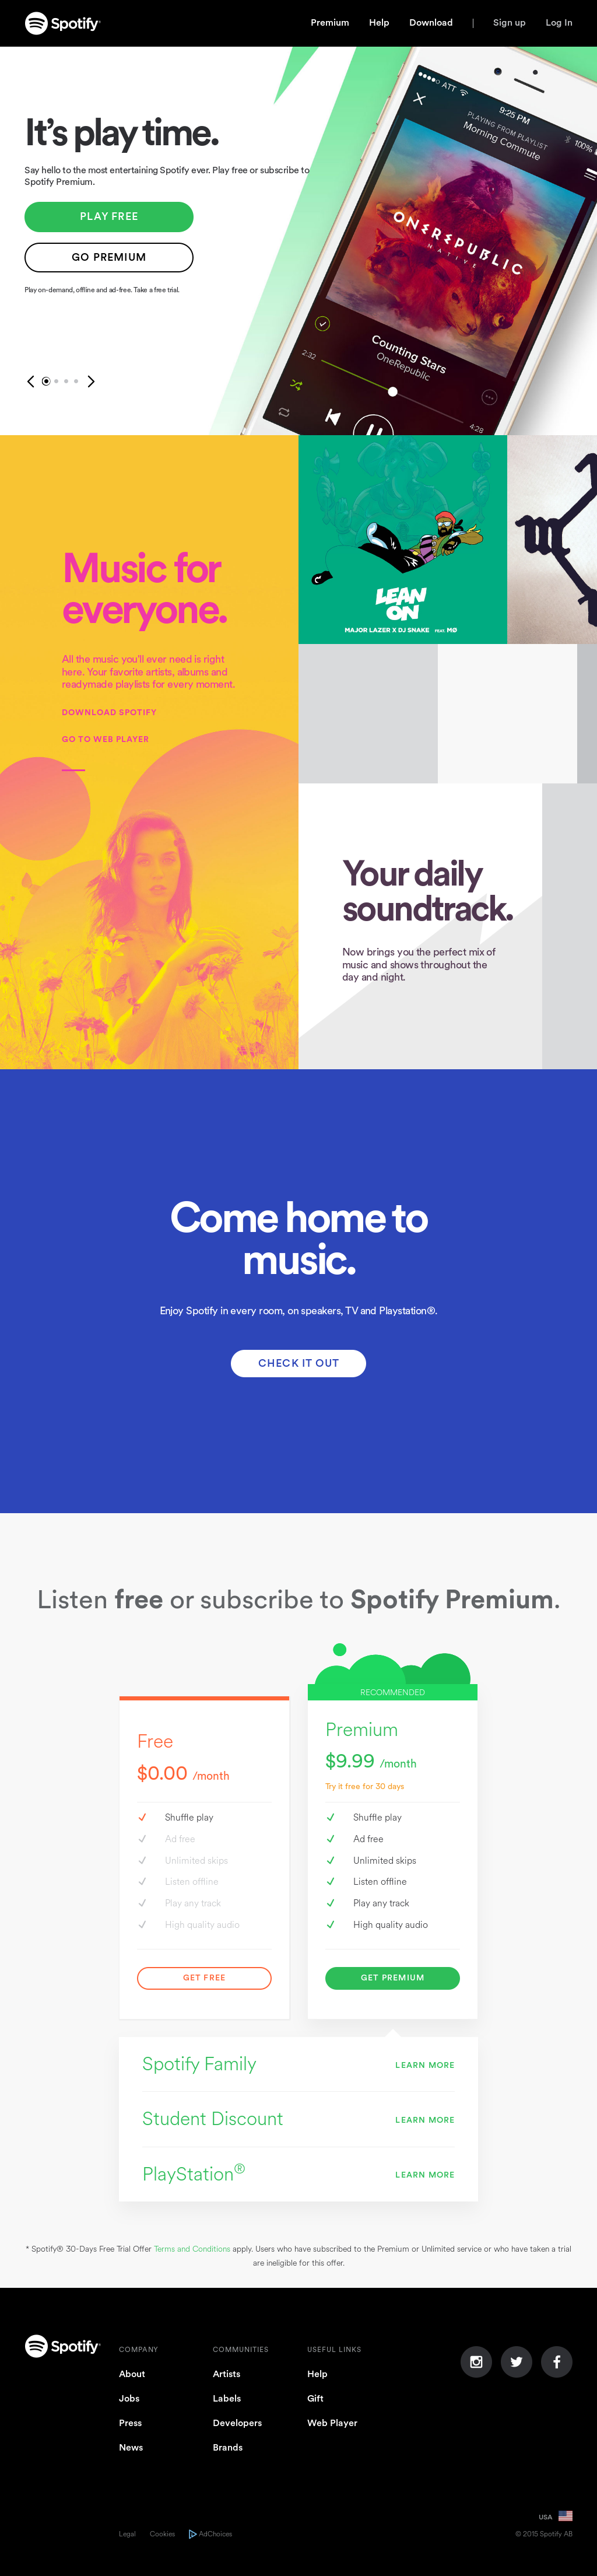 Owler Reports - Spotify Blog Introducing The Million